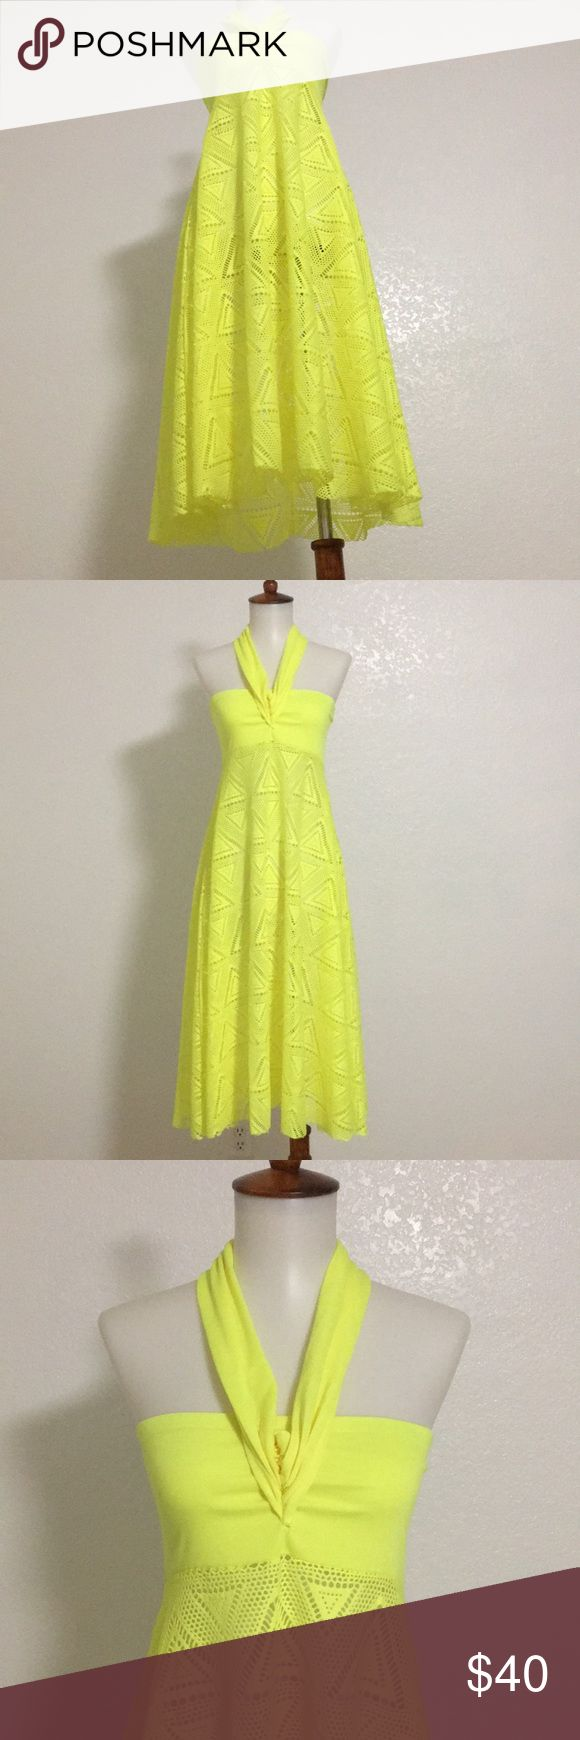 One dress. Unlimited ways halter dress. The all in one multi halter dress. Crochet neon yellow dress. New with tag. Size available: Medium and Large LAGACI Dresses Midi